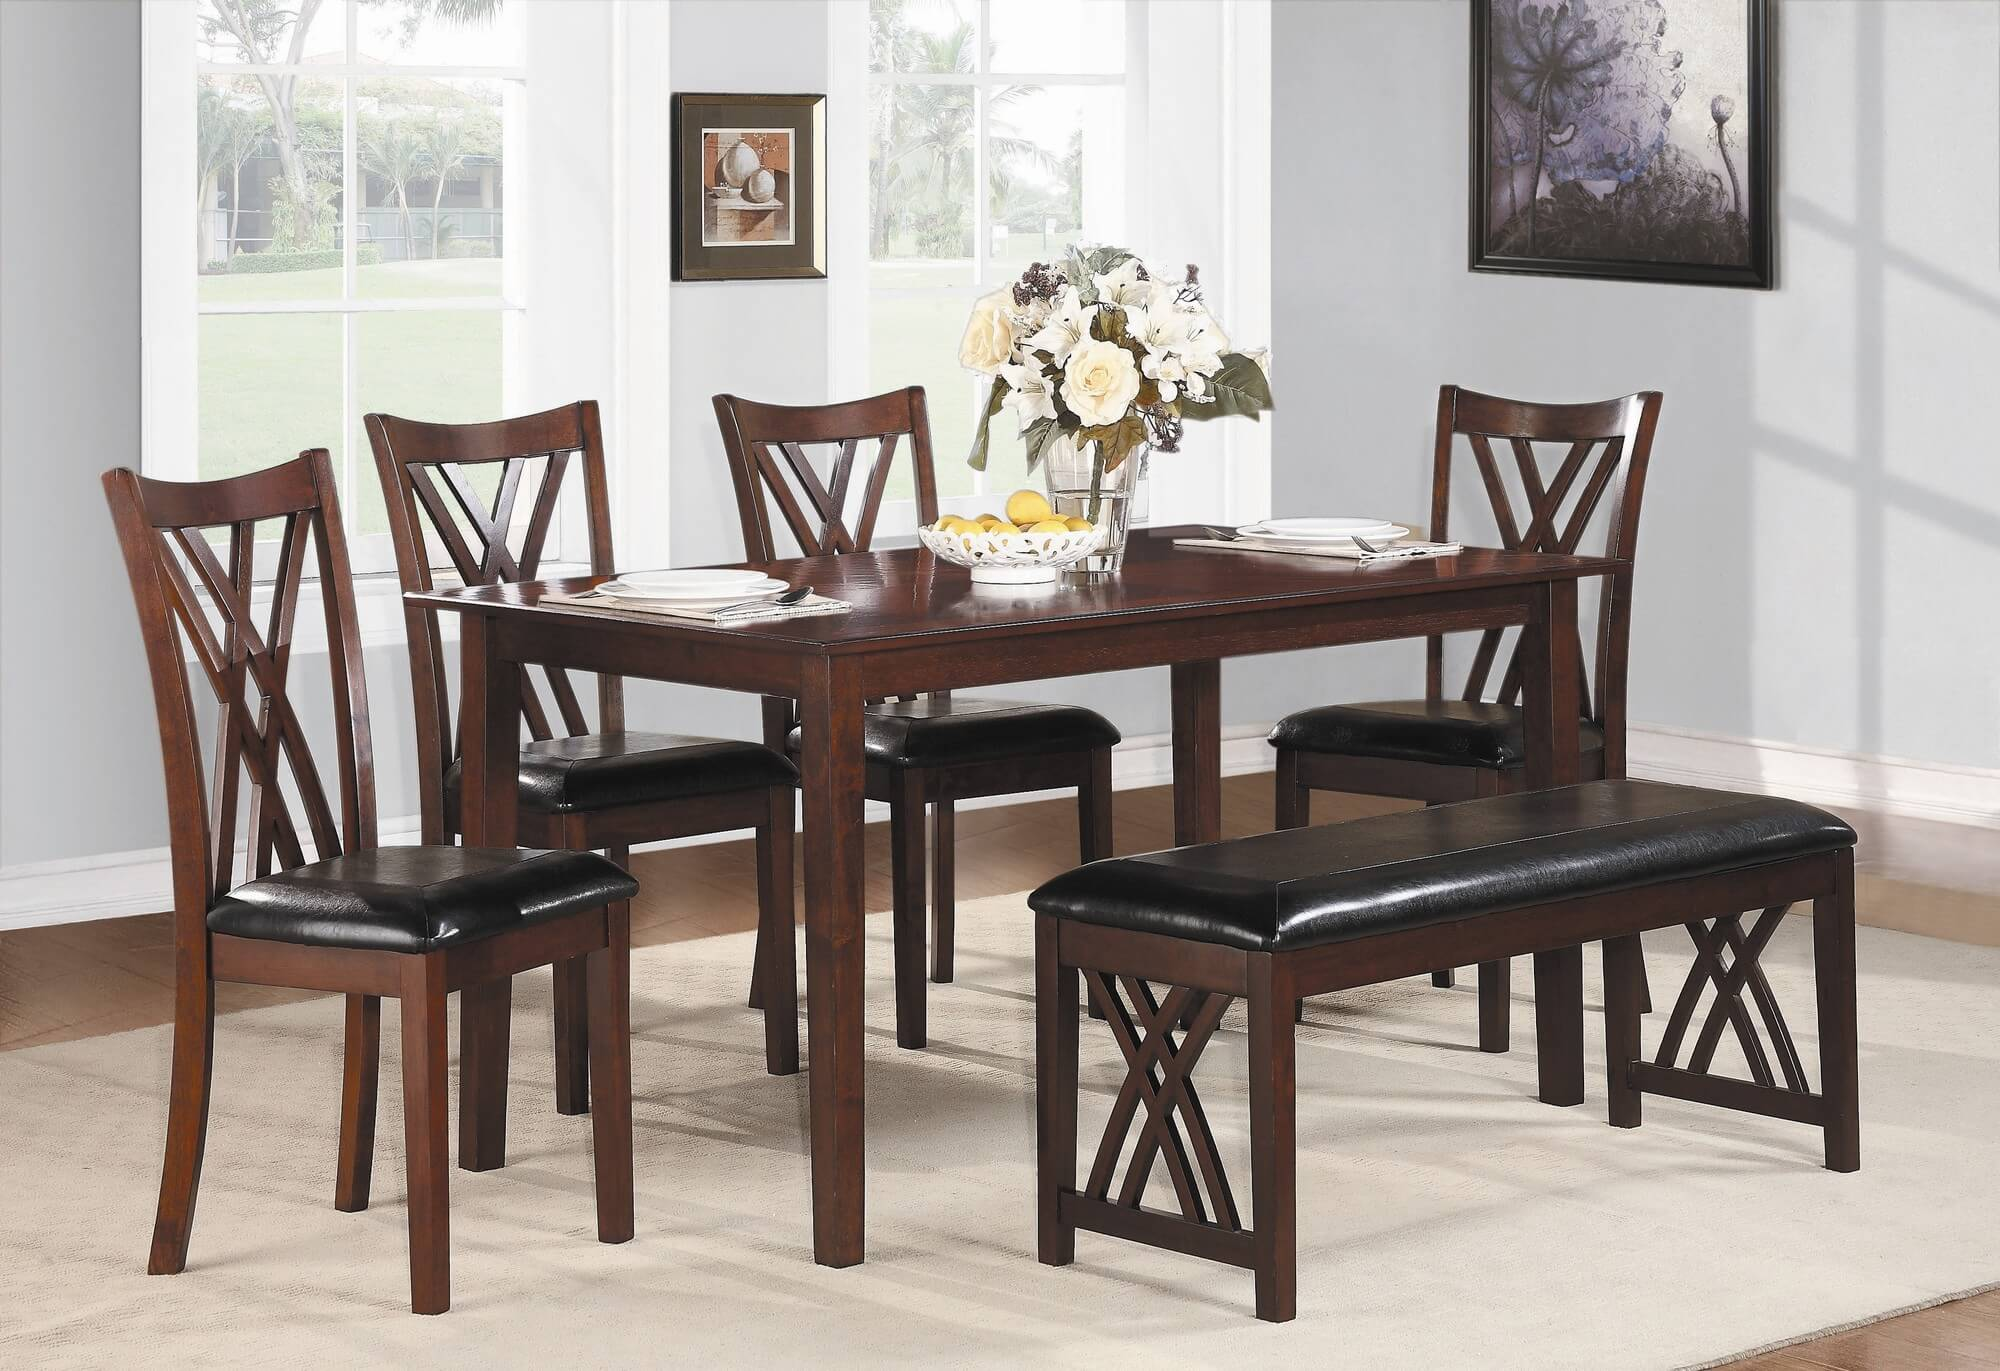 Merveilleux Six Piece Dining Set With Bench With A Cherry Finish And Upholstered Chairs  And Bench.